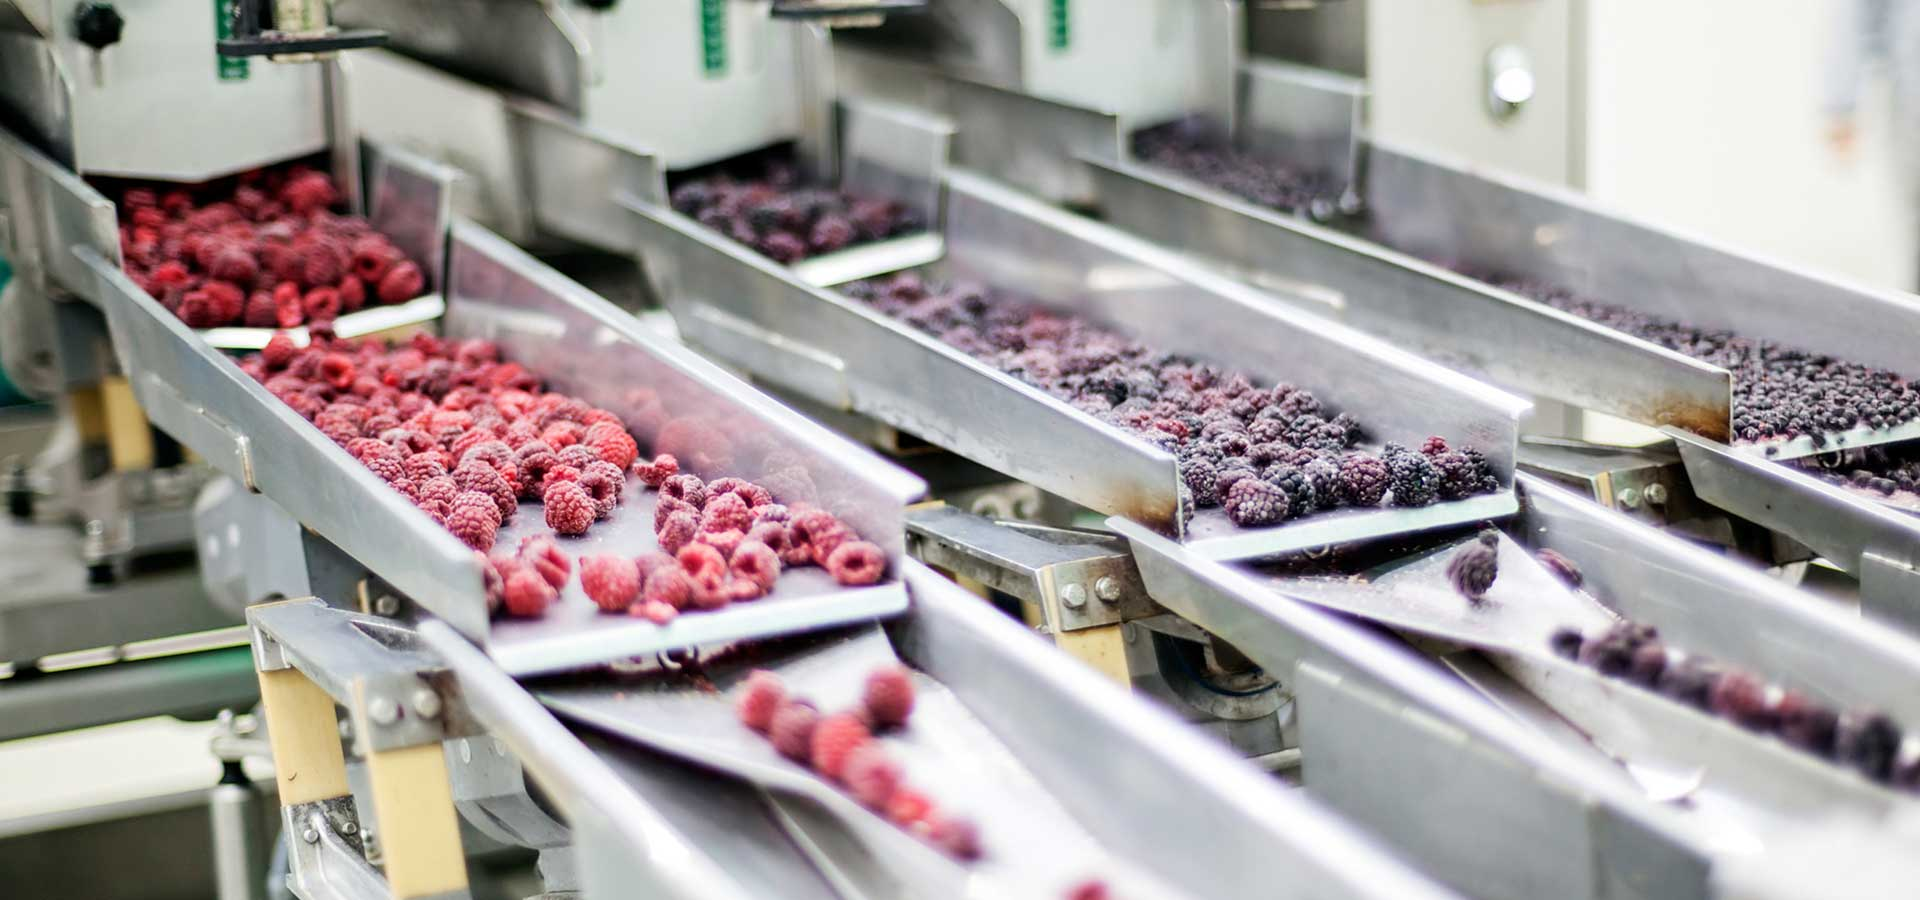 Industrial slide displaying raspberries